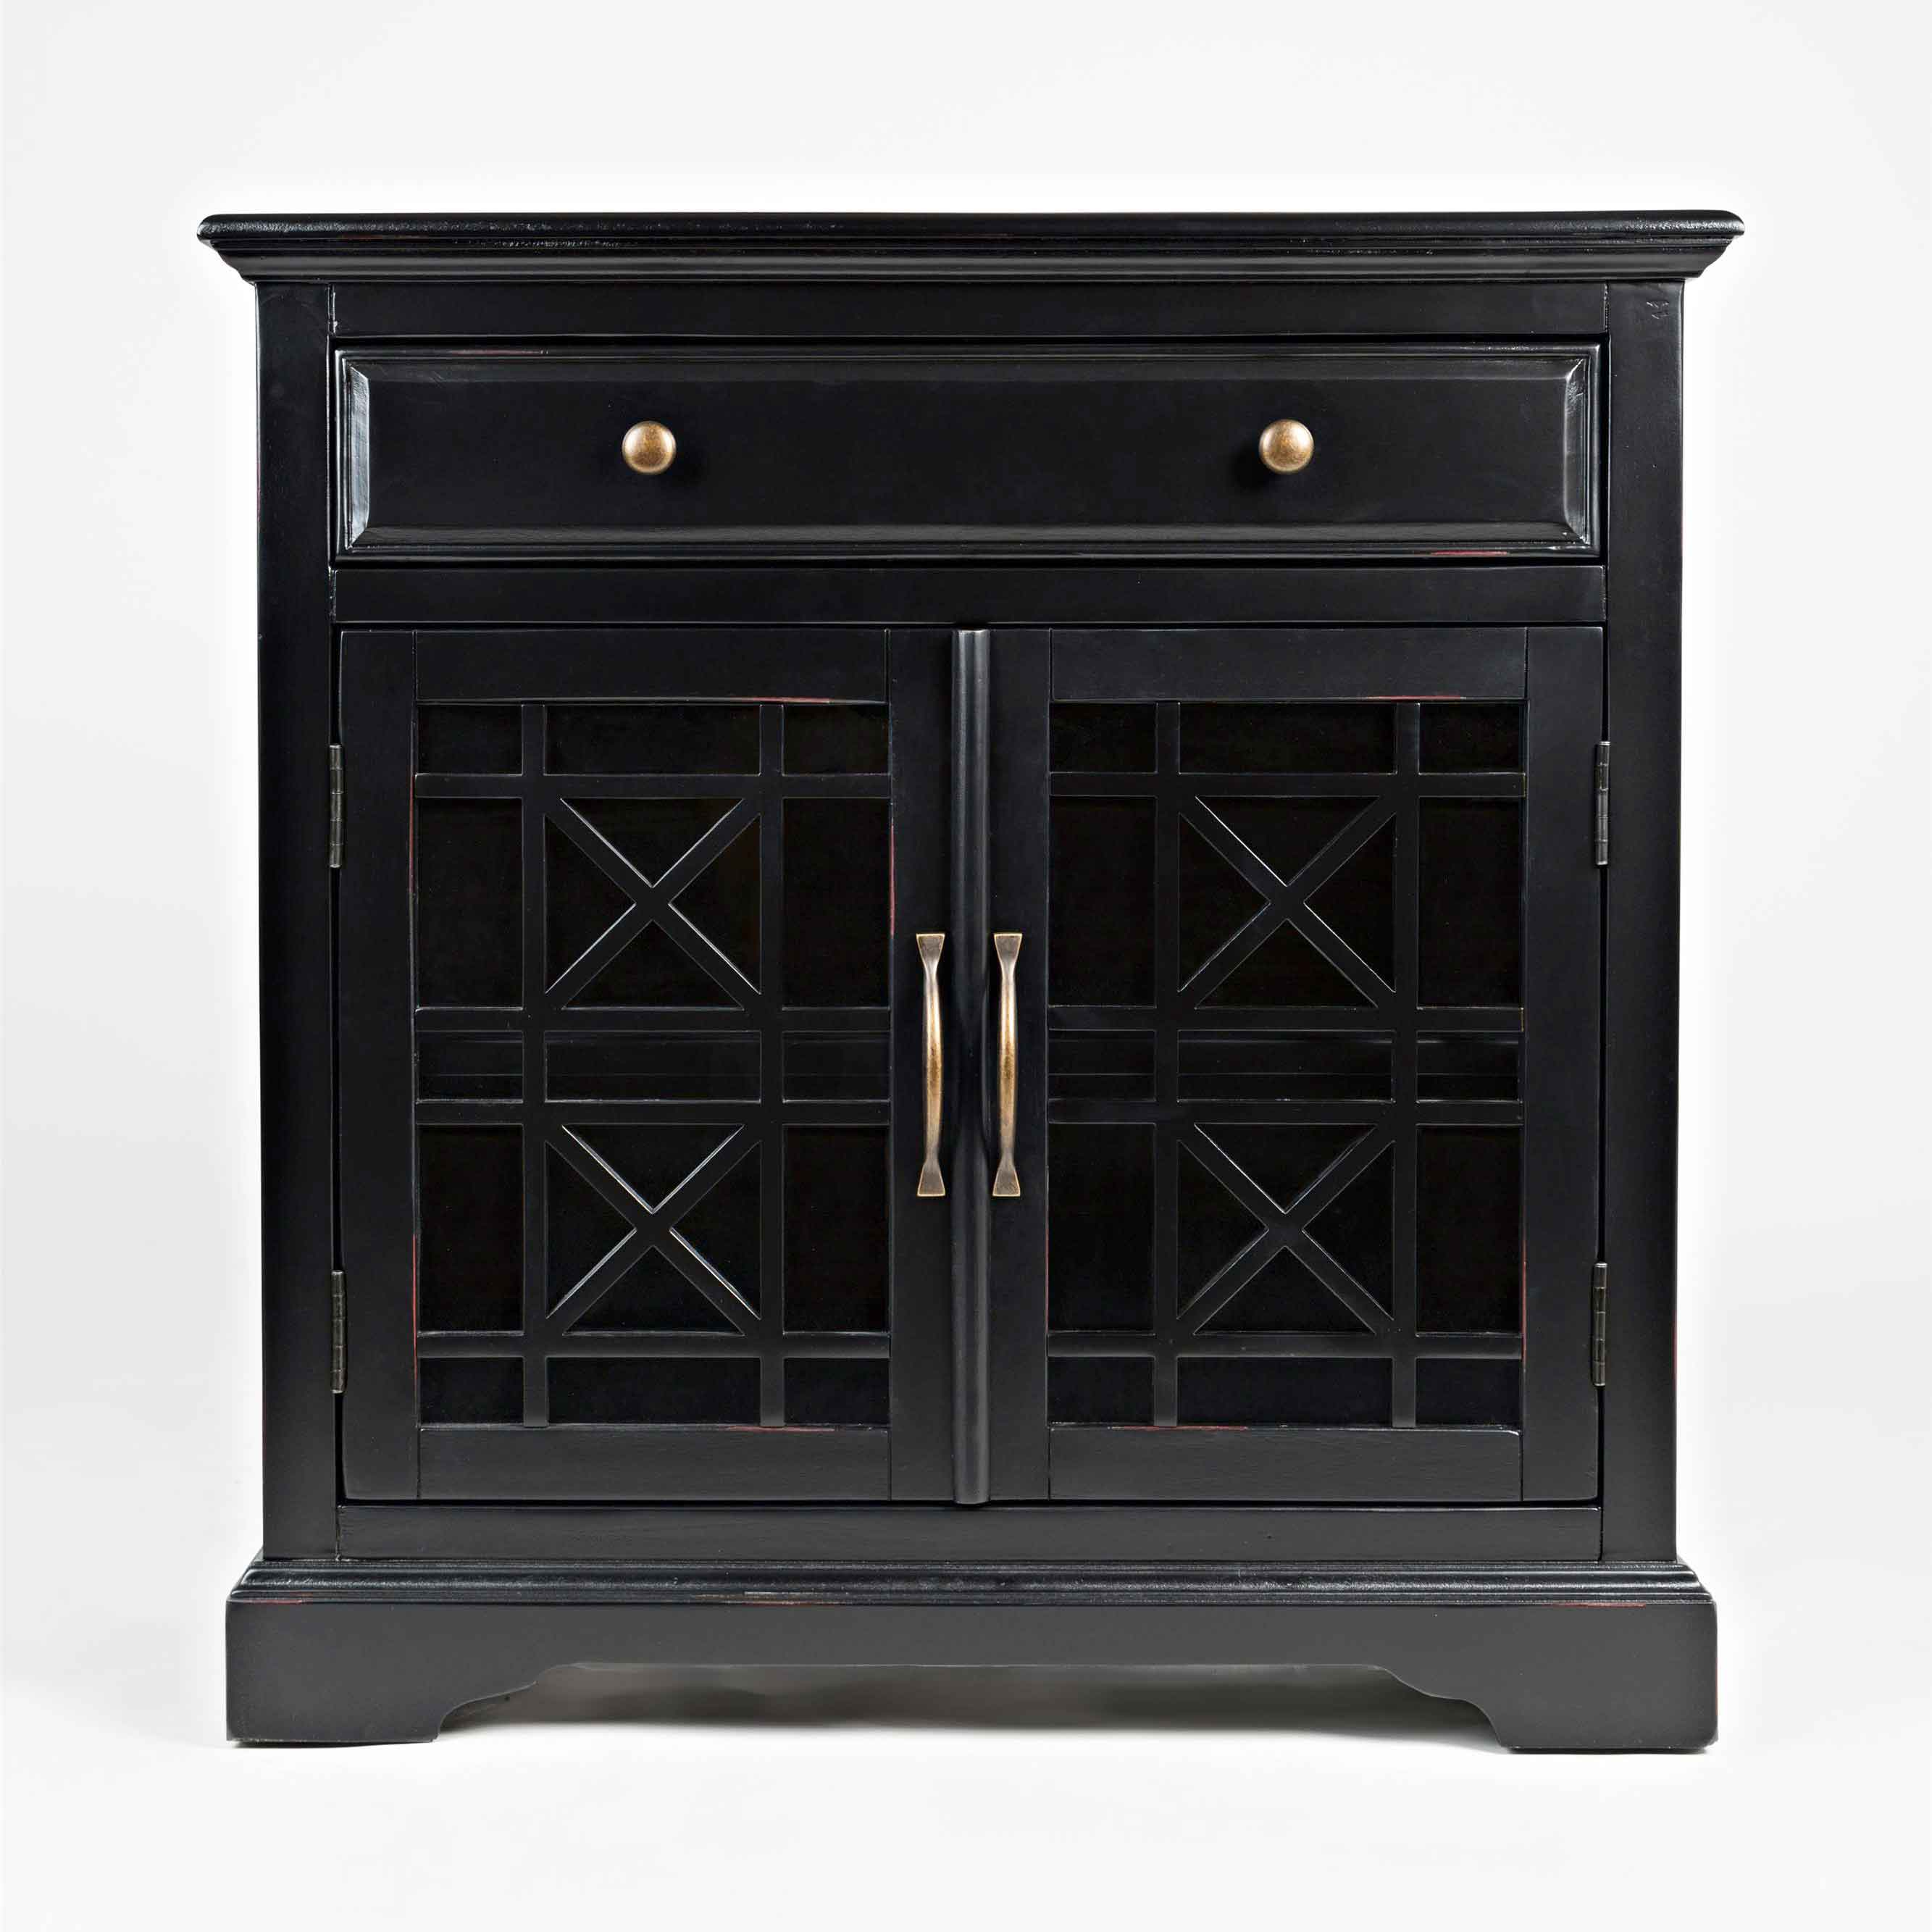 craftsman antique black accent chest chests table small round decorative modern linens white wine cabinet reviews acrylic drink cherry end tables wireless desk lamp cube storage